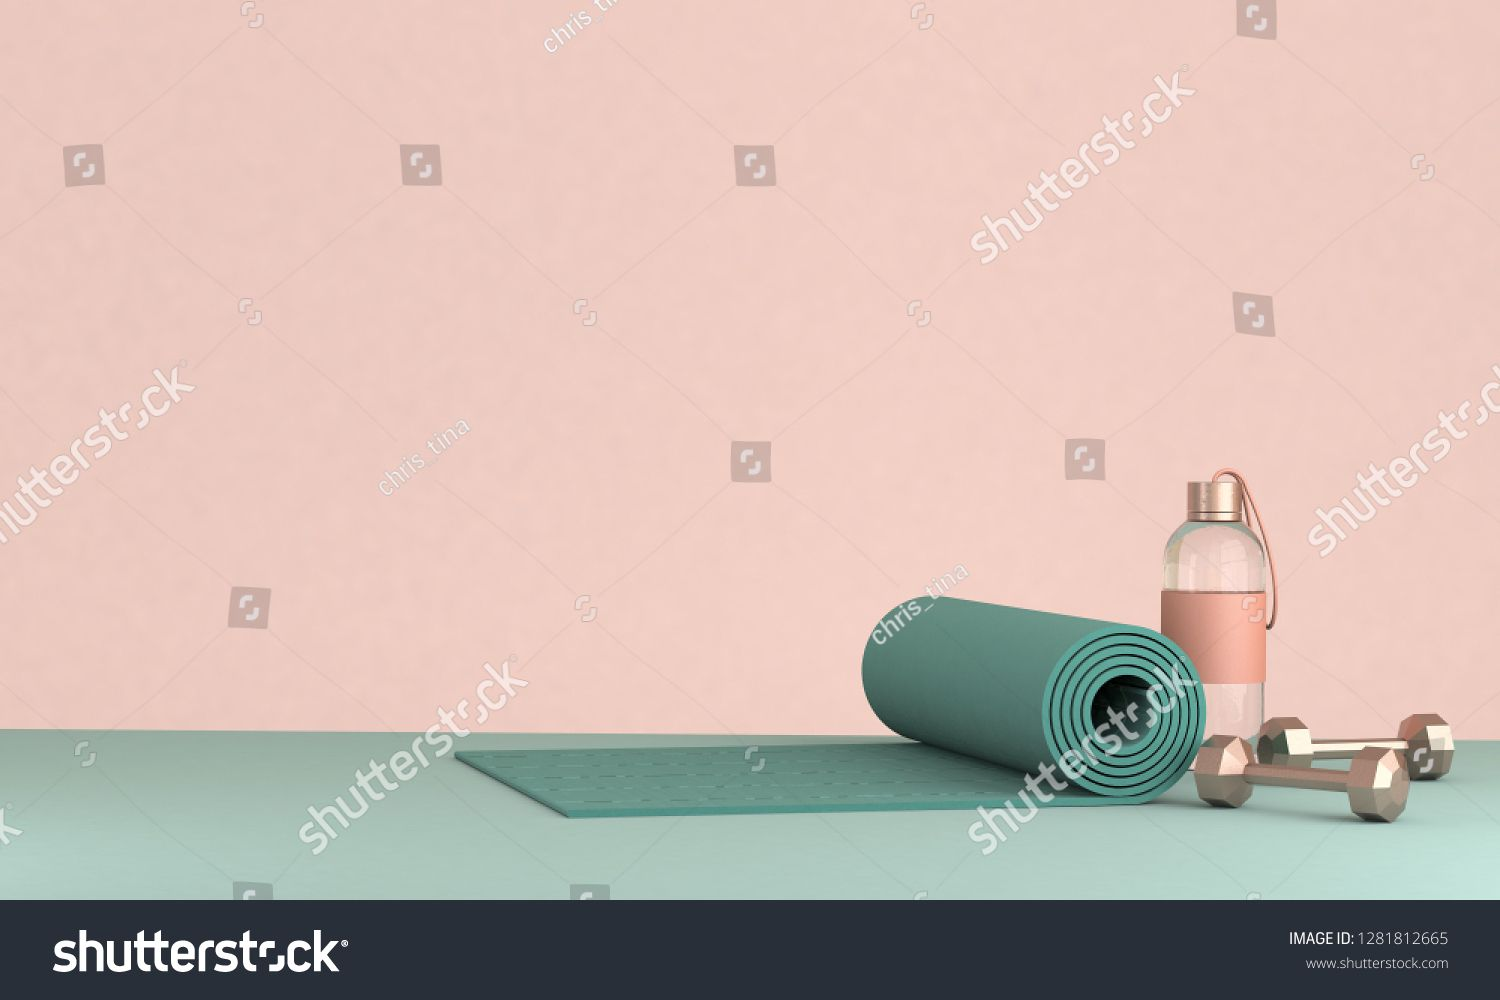 3D render illustration, sport fitness equipment, female concept, yoga mat, bottle of water, dumbbell...